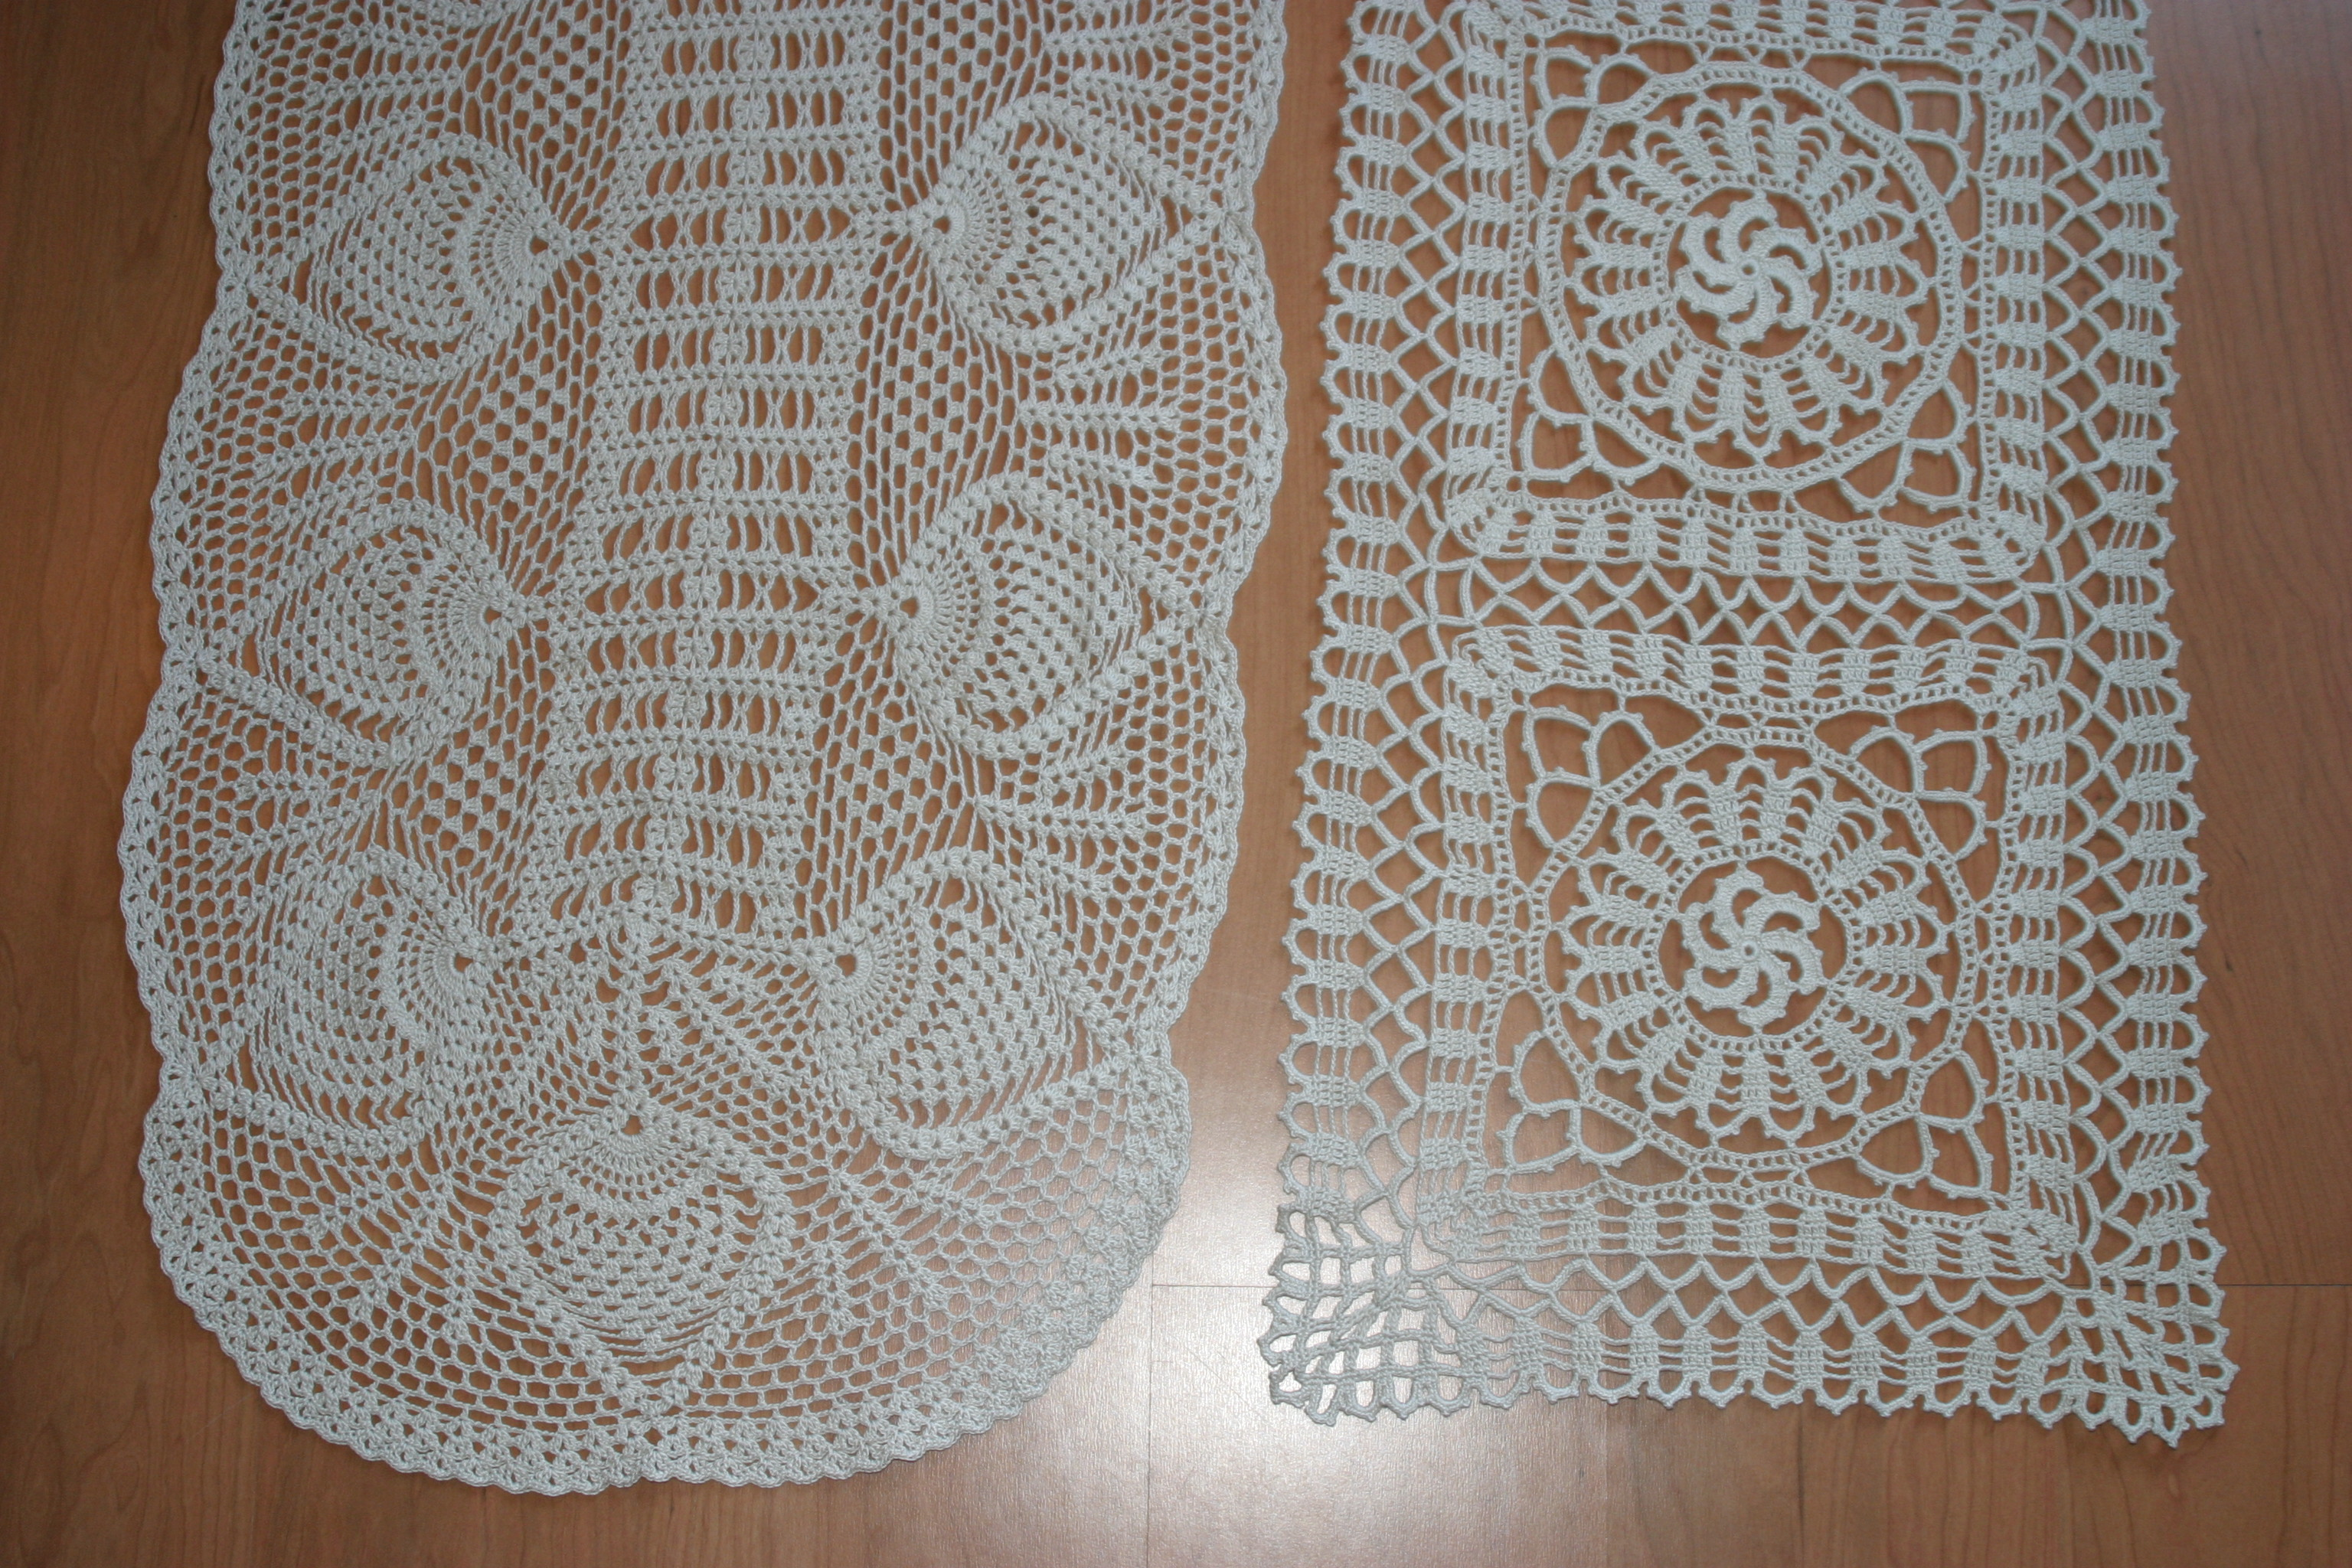 Crocheted Table Runners – Chaordicwear – Up-cycled, One-of-a-kind ...